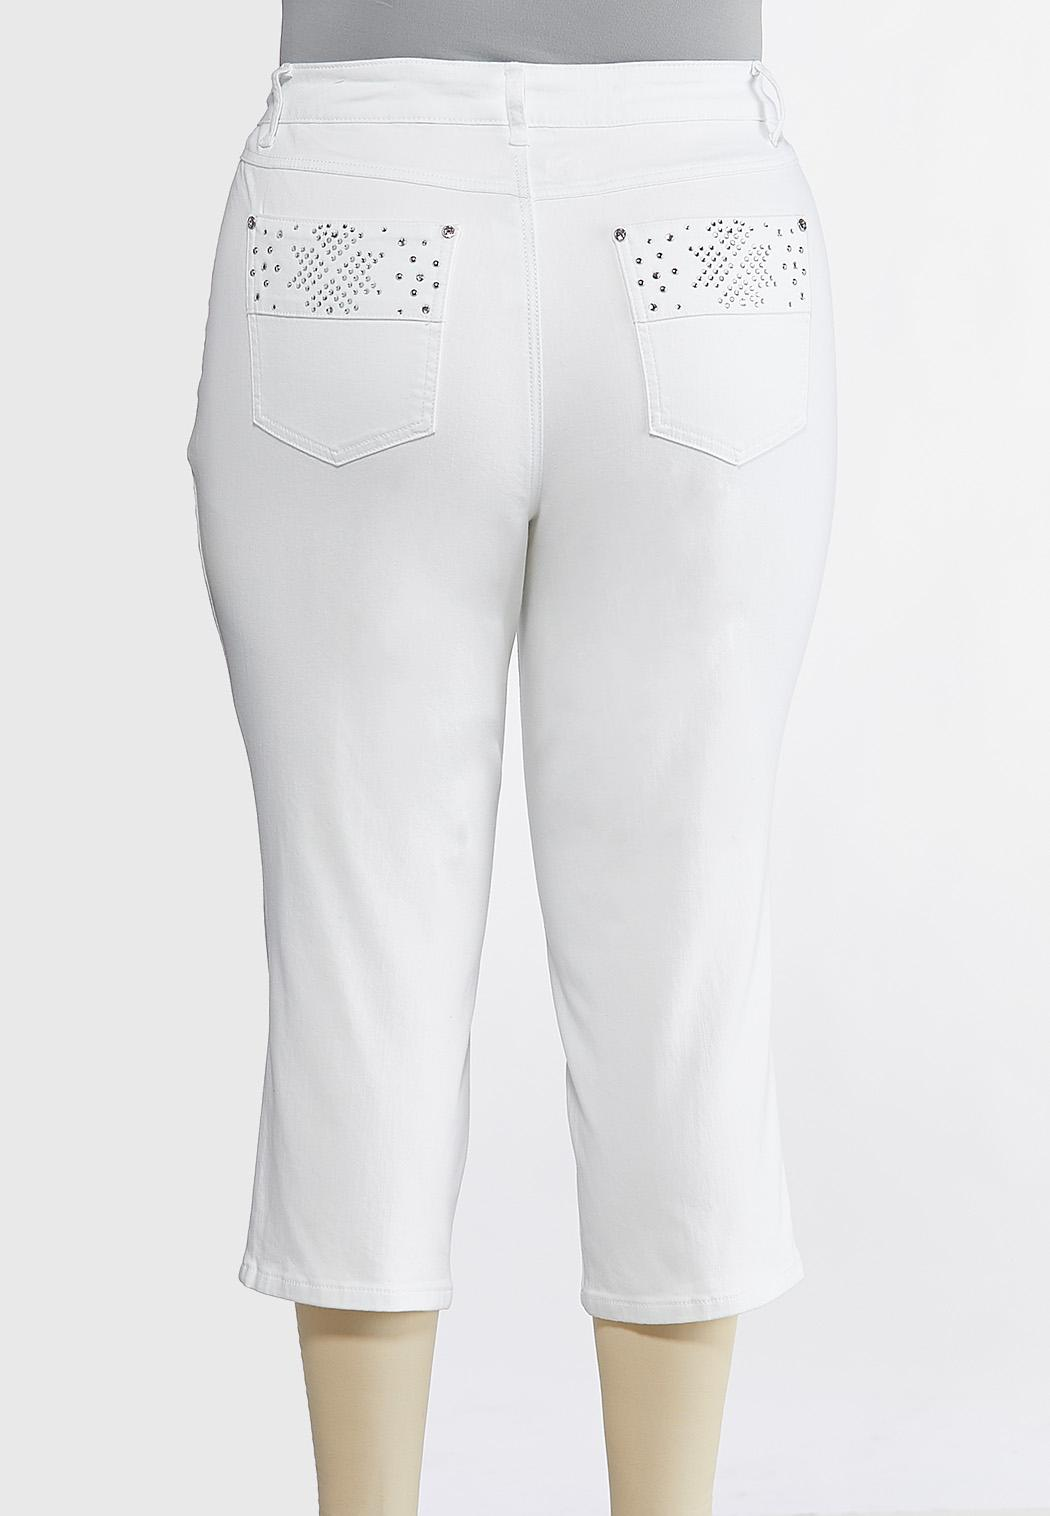 Plus Size Cropped Stone And Stud Jeans